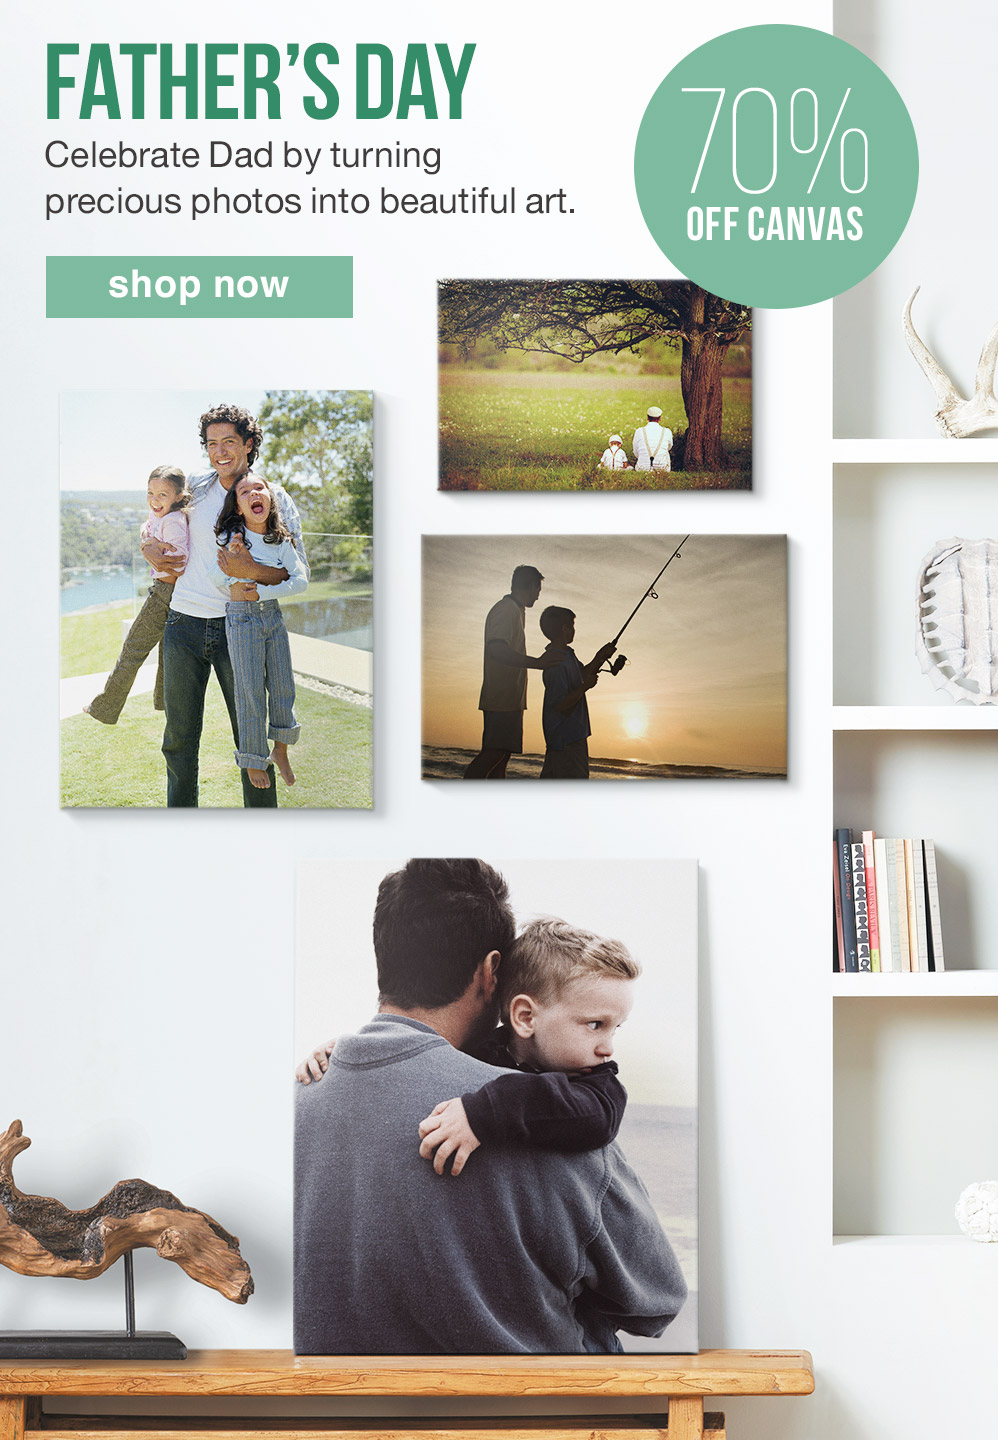 FATHER'S DAY. Celebrate Dad by turning precious photos into beautiful art. 70% OFF CANVAS. SHOP NOW